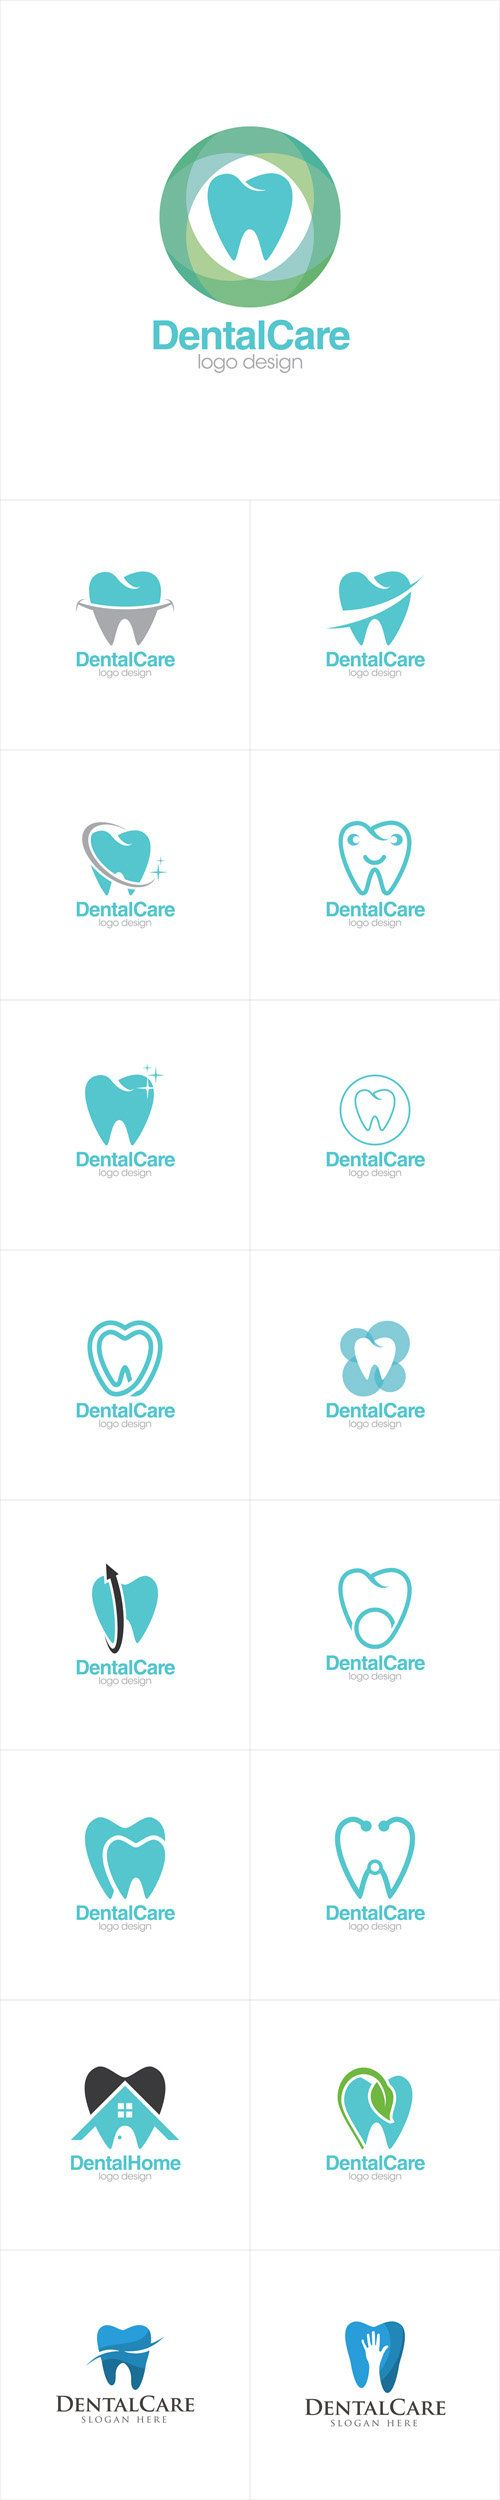 Vectors - Dental Care Creative Concept Logo Design Templates